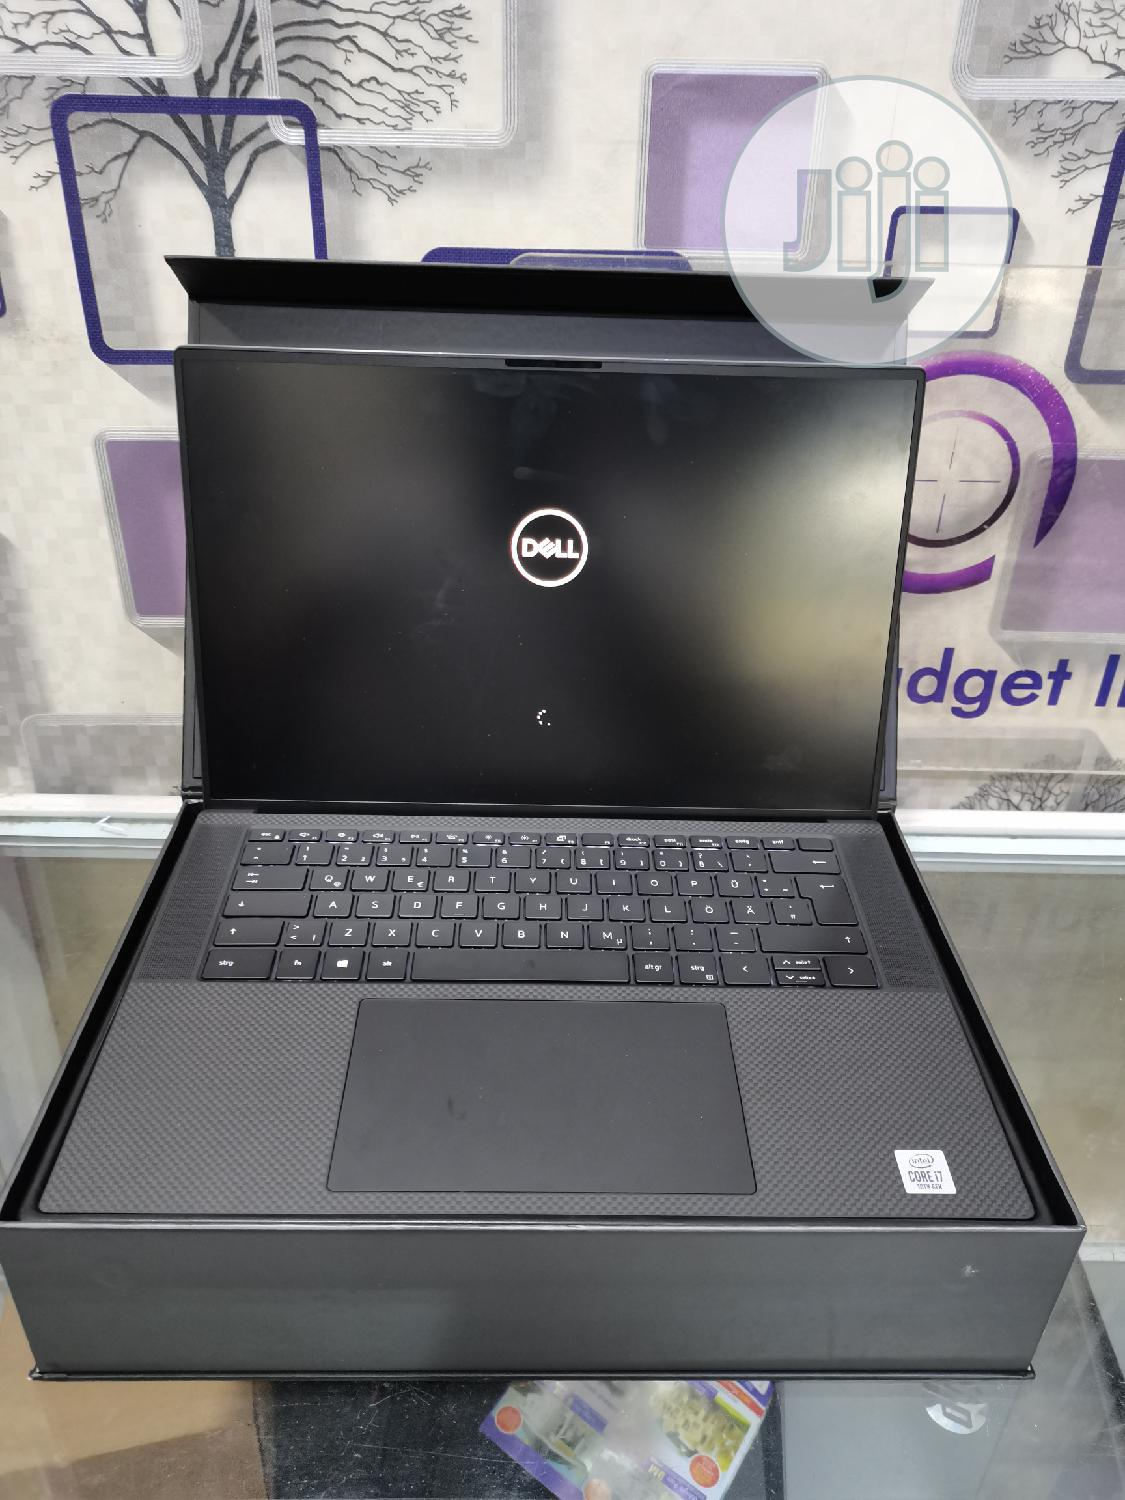 New Laptop Dell XPS 15 32GB Intel Core i7 SSD 1T | Laptops & Computers for sale in Wuse 2, Abuja (FCT) State, Nigeria